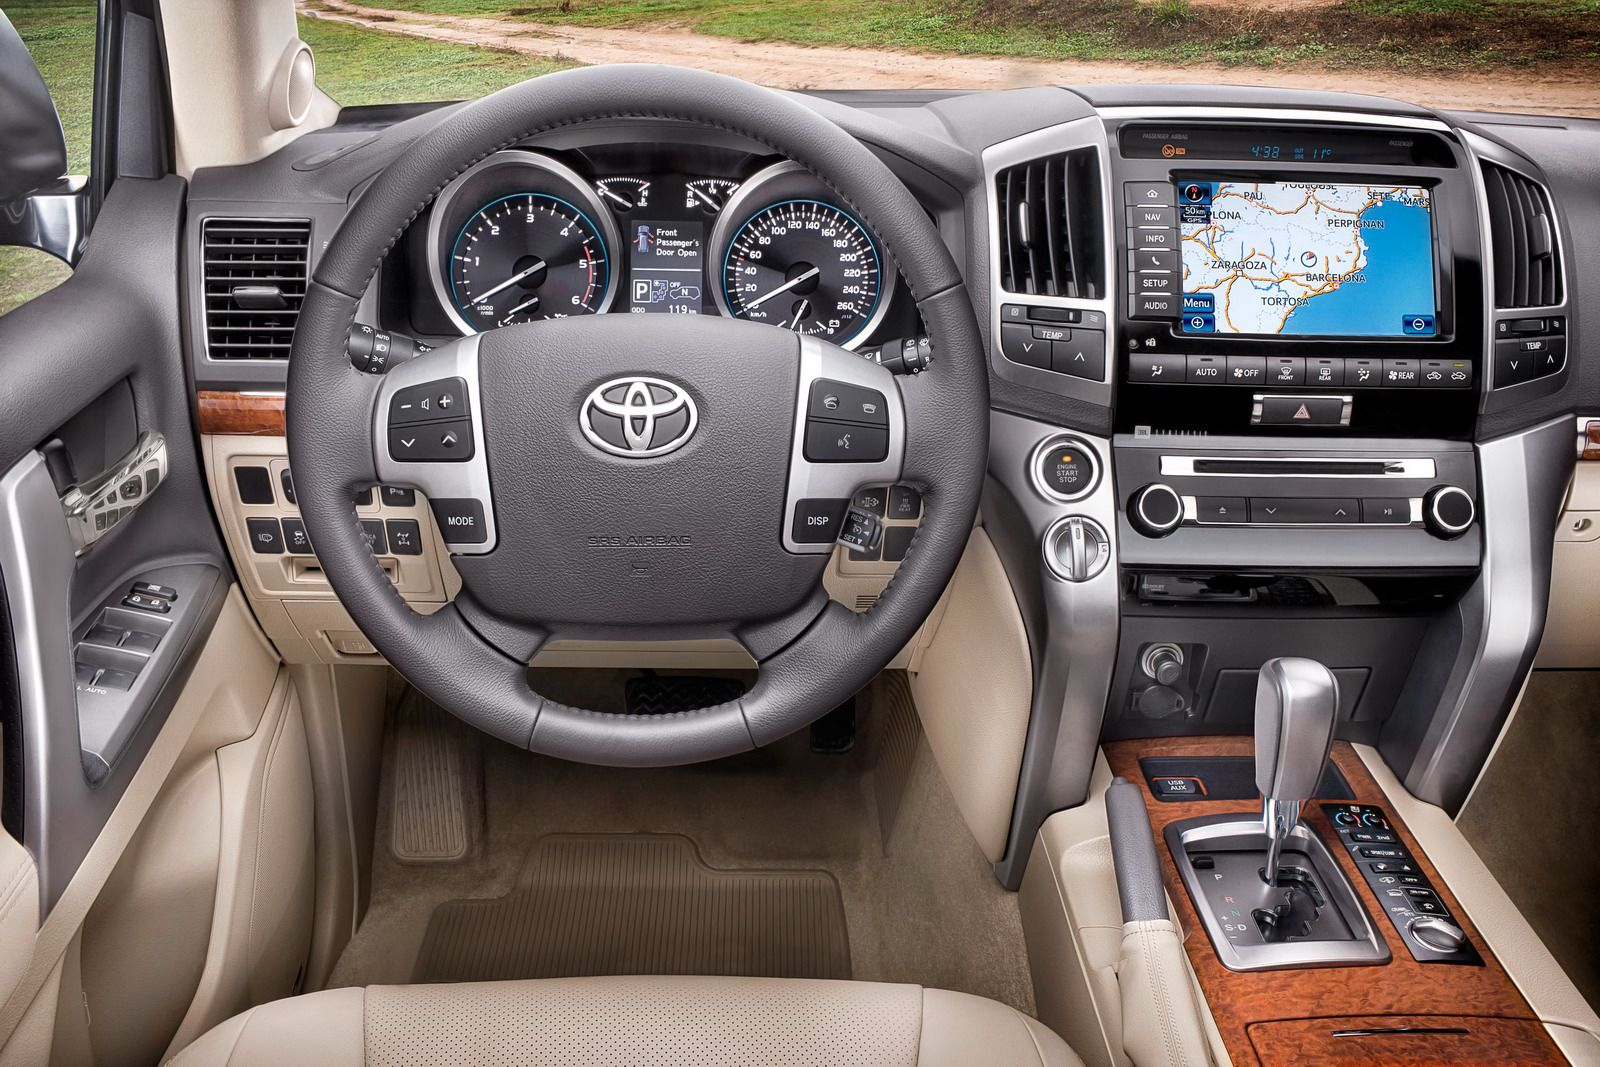 2016 Toyota 4Runner Interior? Not Really! Hopefully They Do Something Like  This To The Interiors On The New 4X4